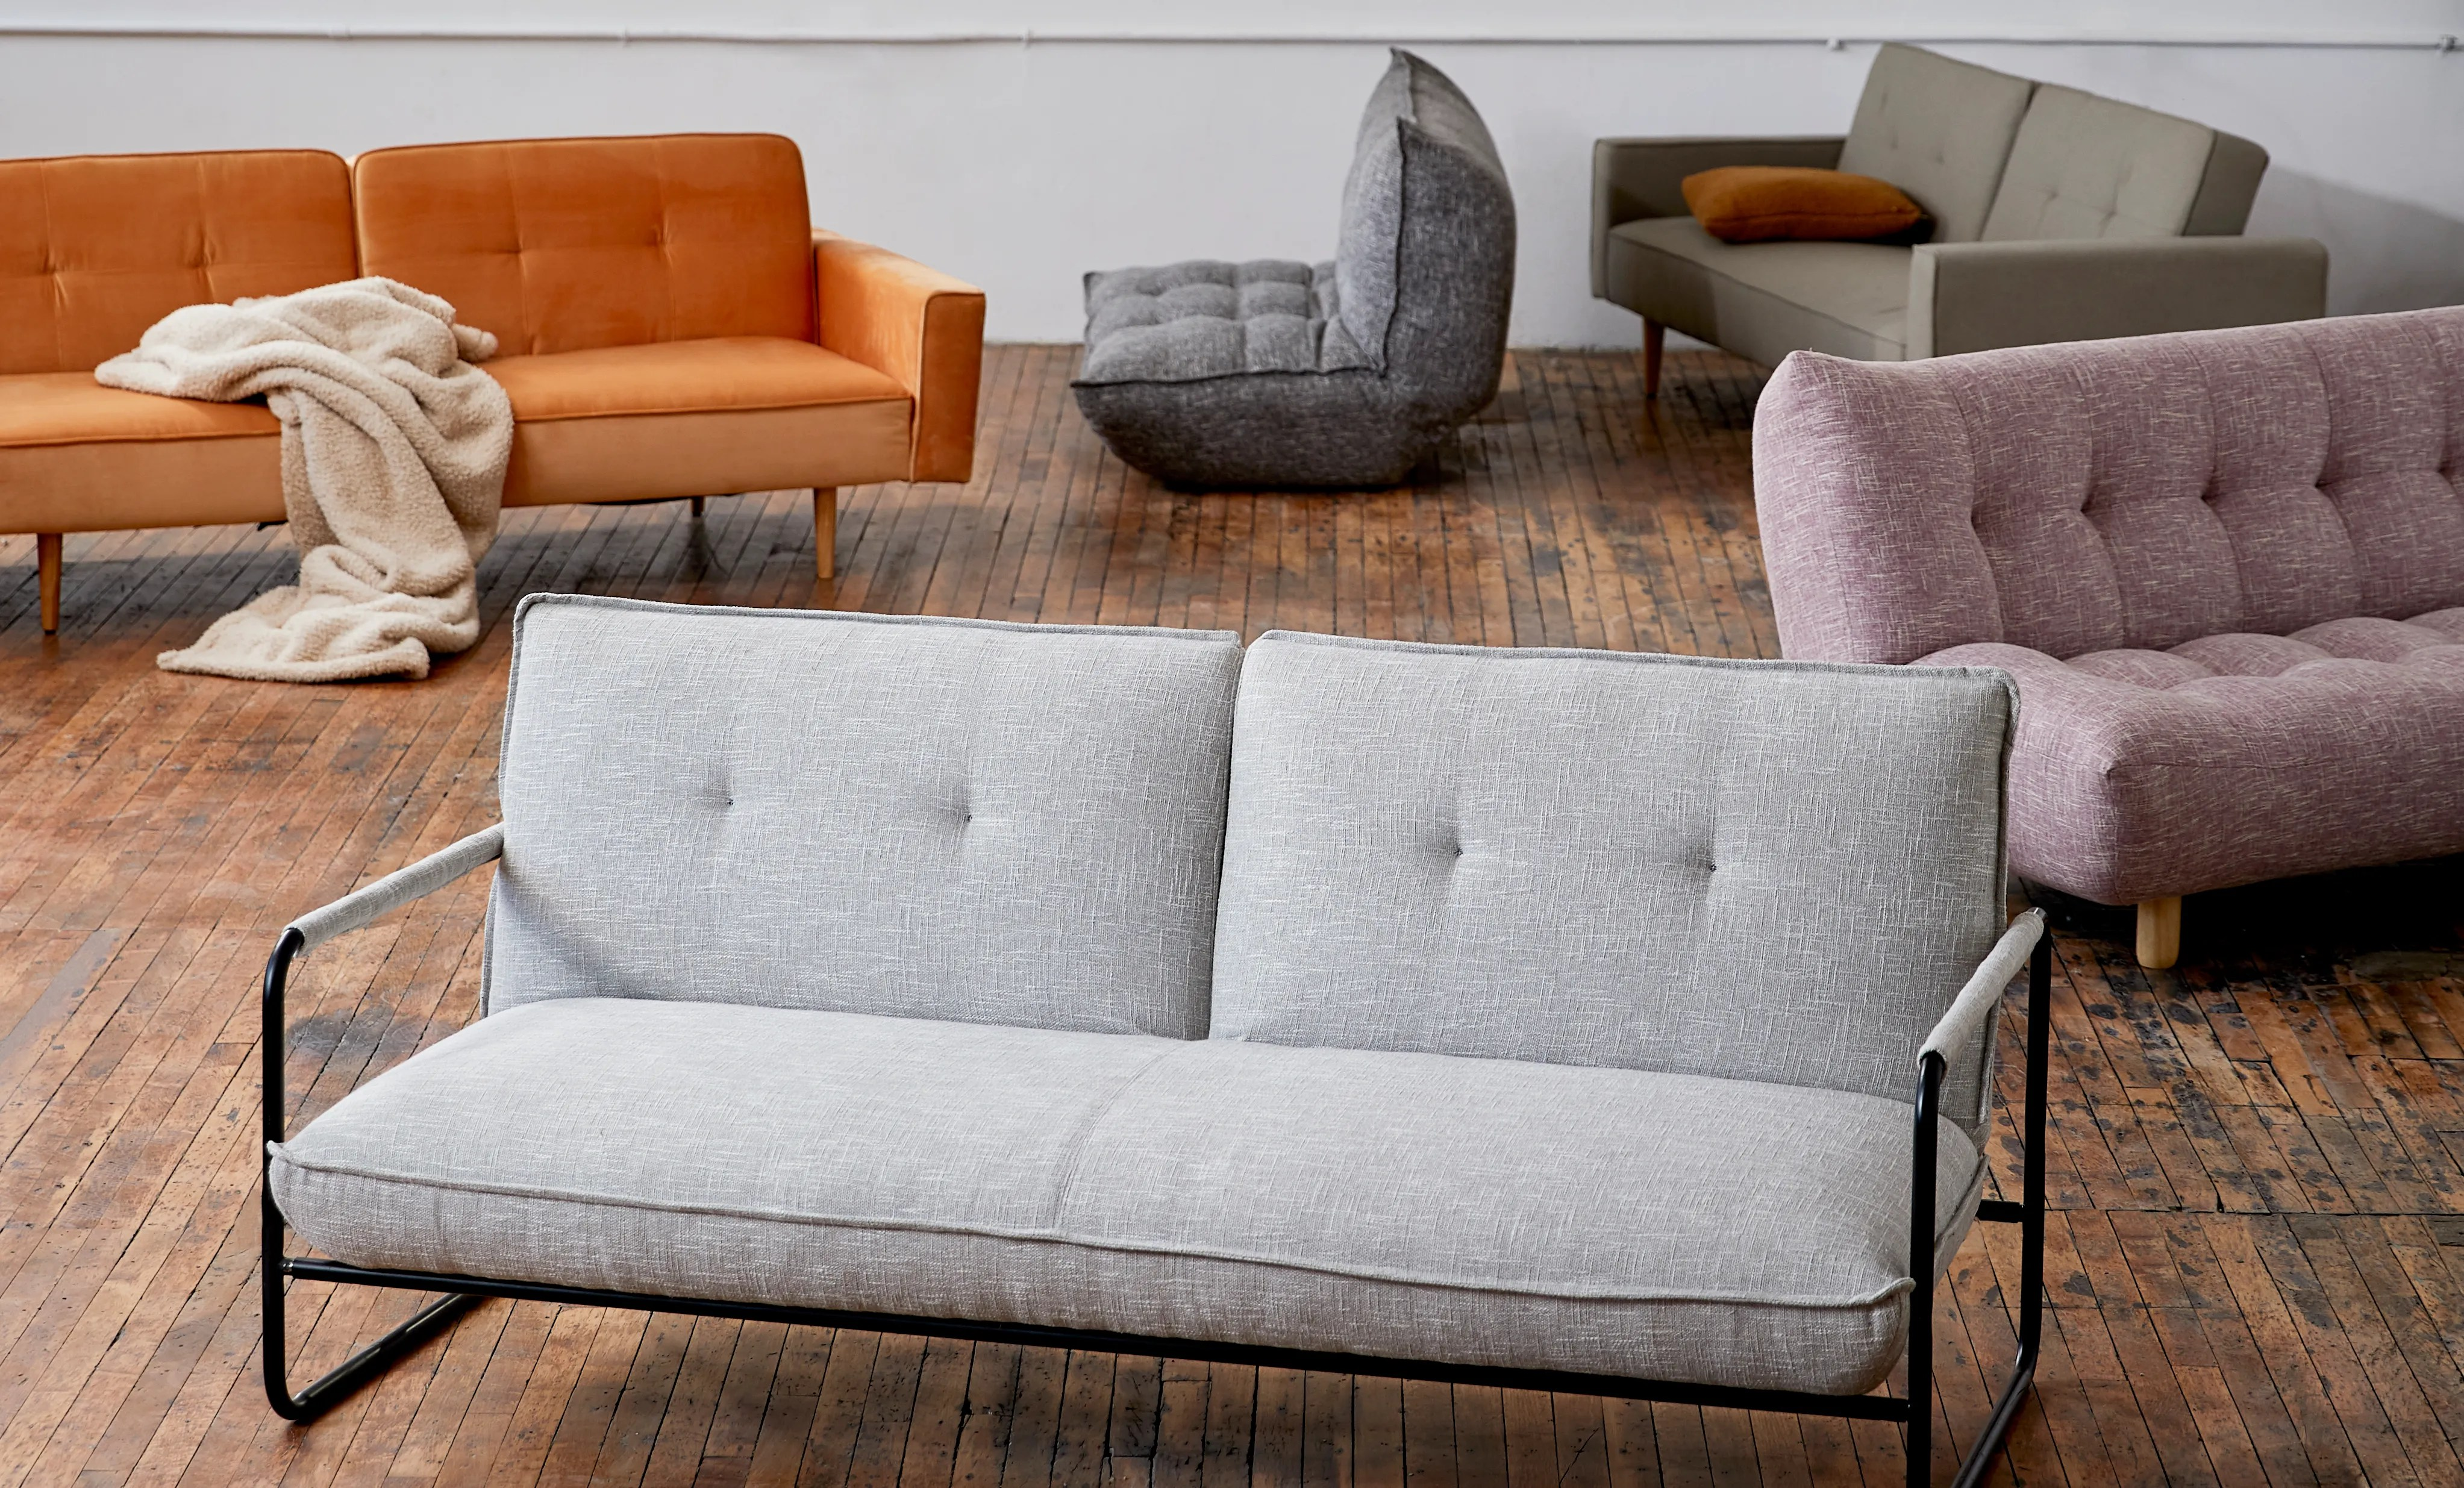 Urban Sofa S 9 Inexpensive Couches (all Under $600!) From Urban